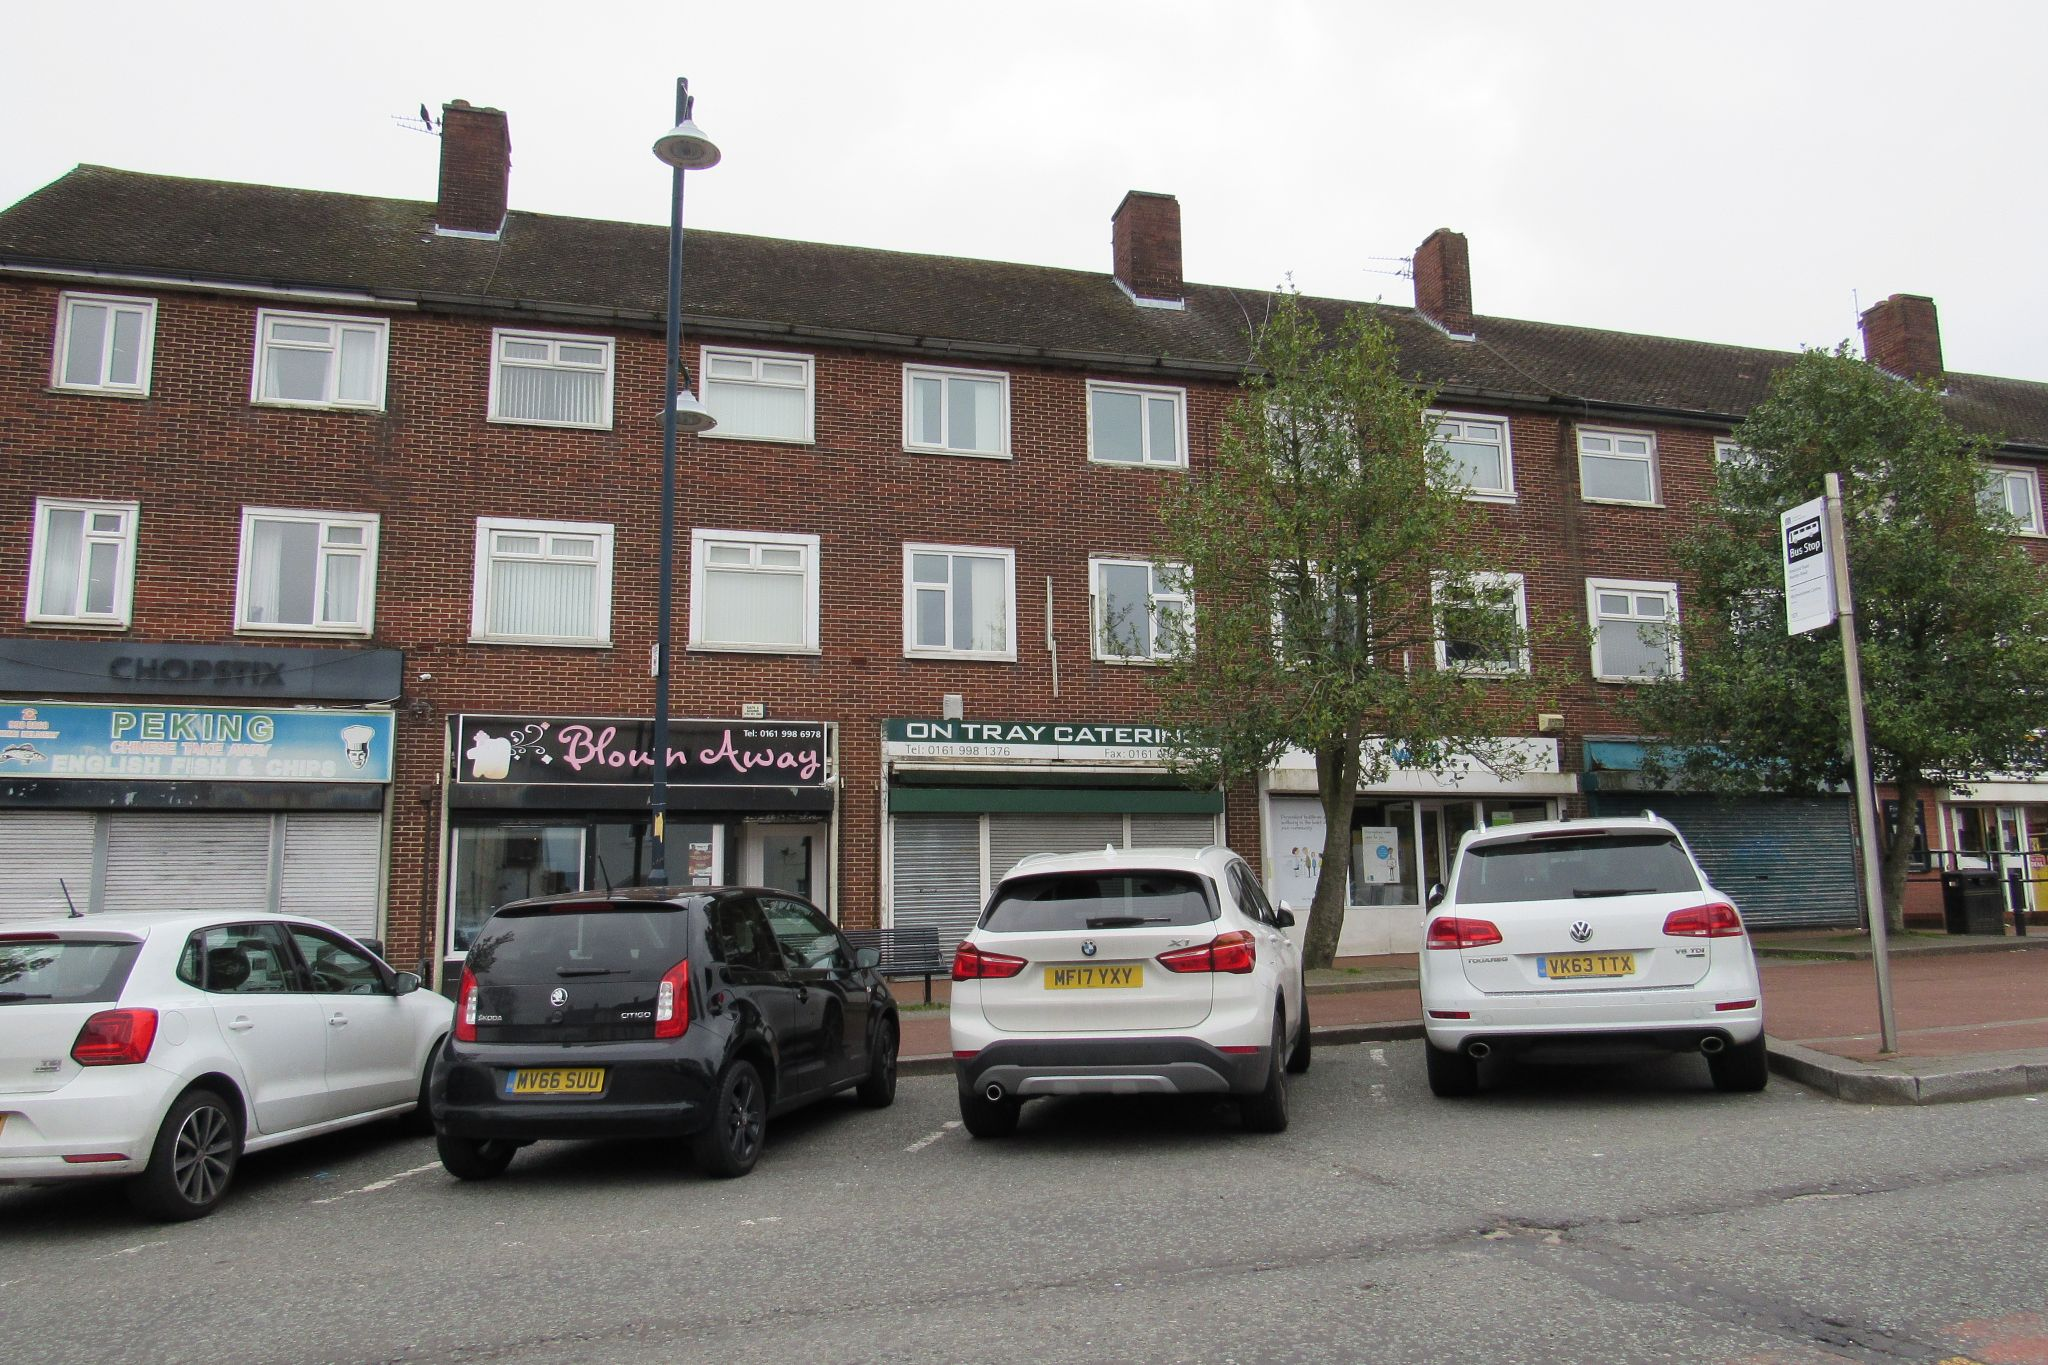 2 bedroom maisonette flat/apartment To Let in Manchester - Photograph 1.